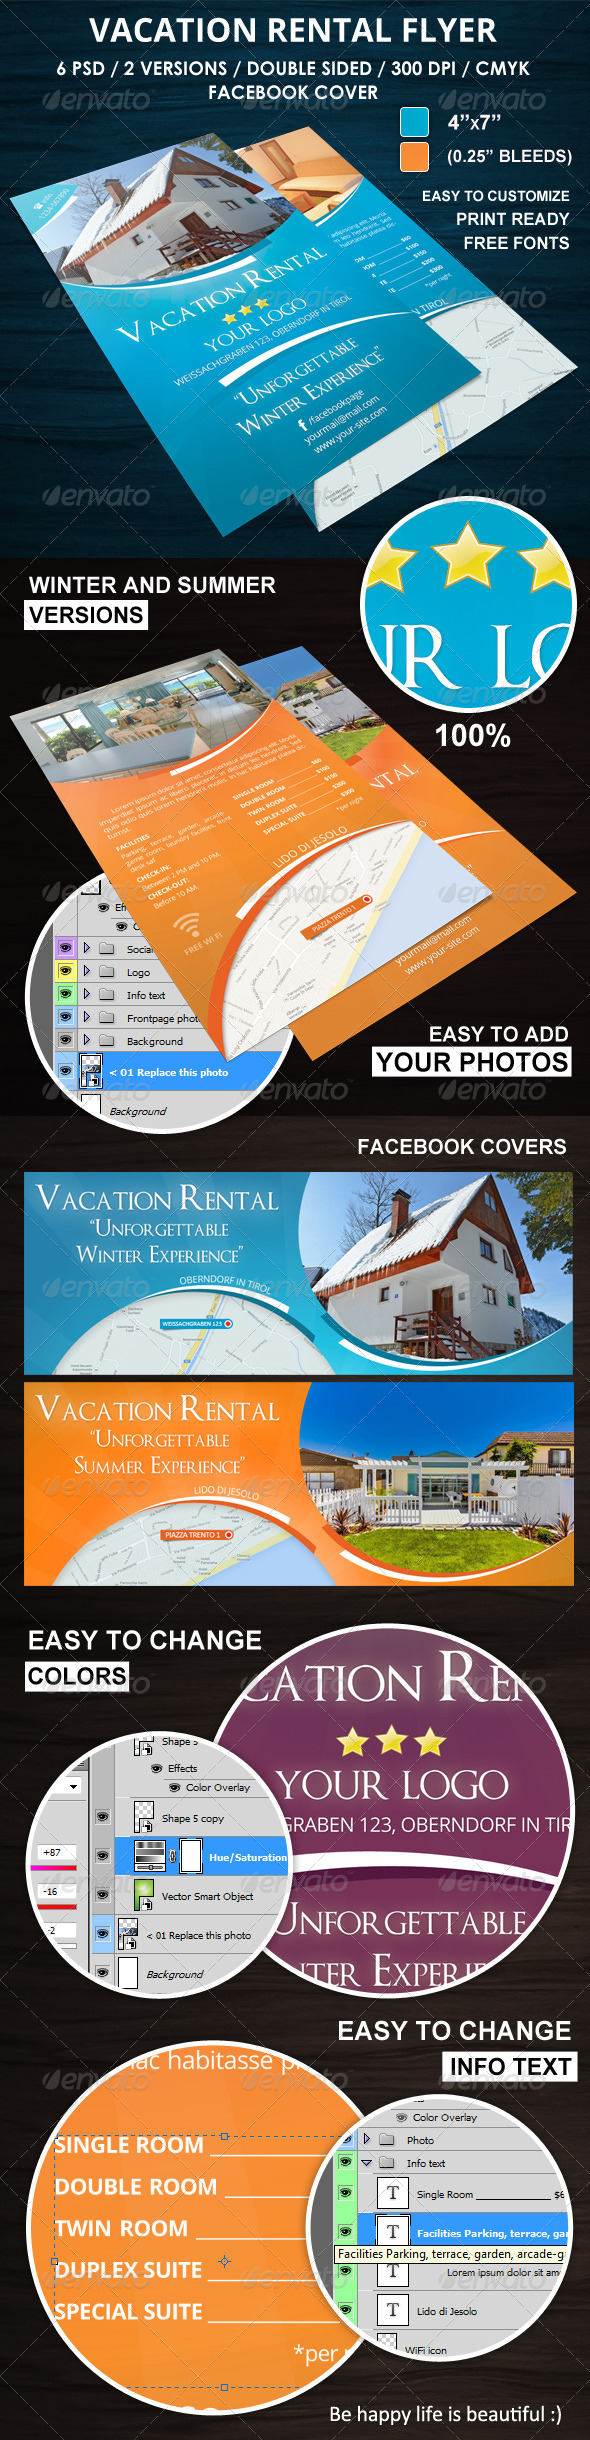 Vacation Rental Flyer - Corporate Flyers